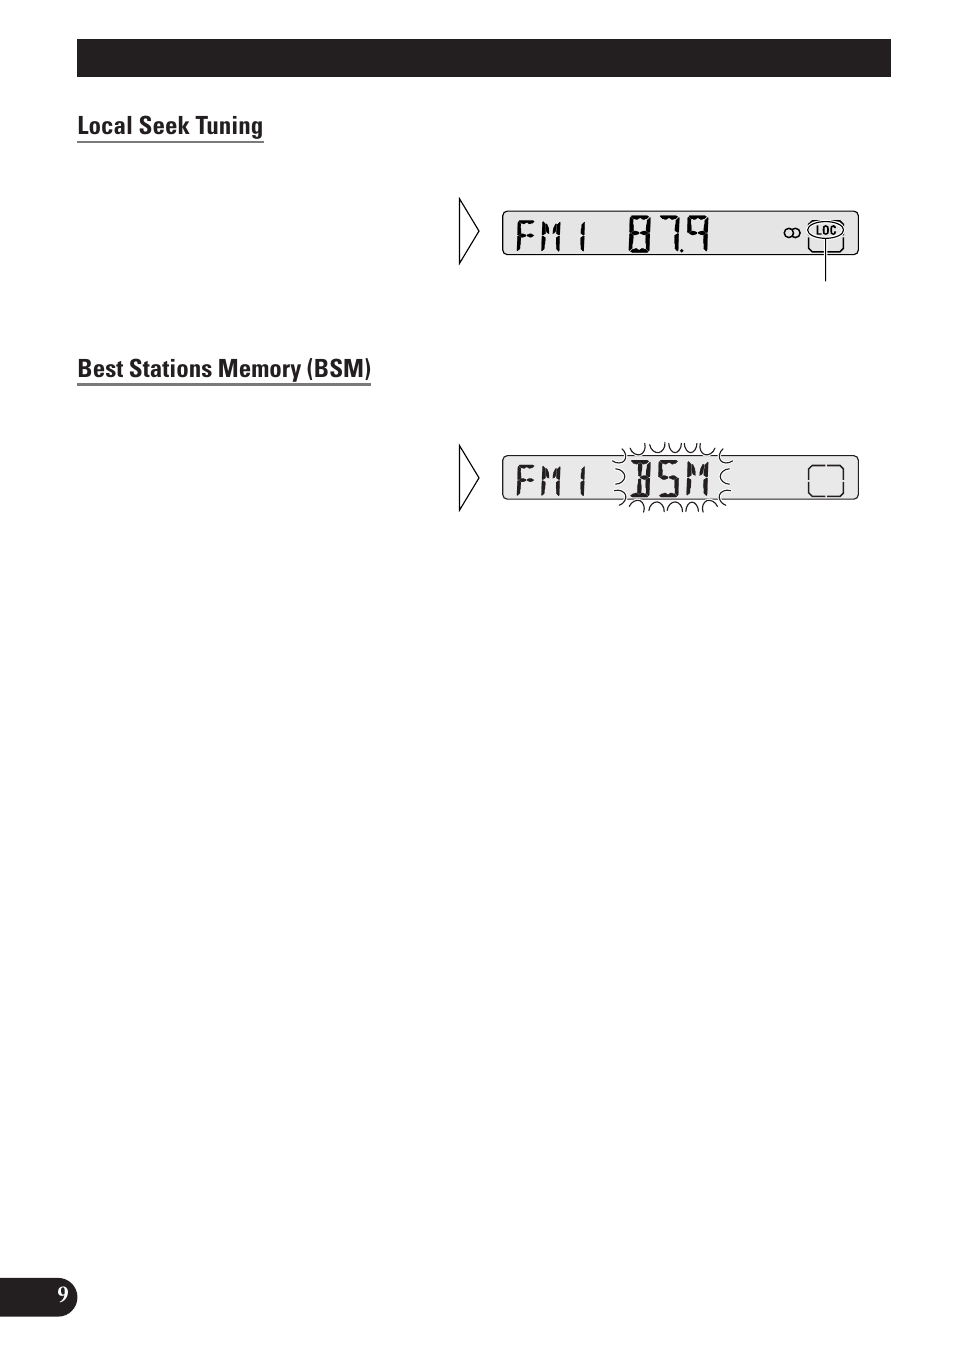 pioneer deh 2100 page10?resize\\\\\\\\\\\\\\\\\\\\\\\\\\\\\\\=665%2C945 pioneer deh 24ub wiring diagram pioneer wiring diagrams pioneer deh 24ub wiring diagram at fashall.co